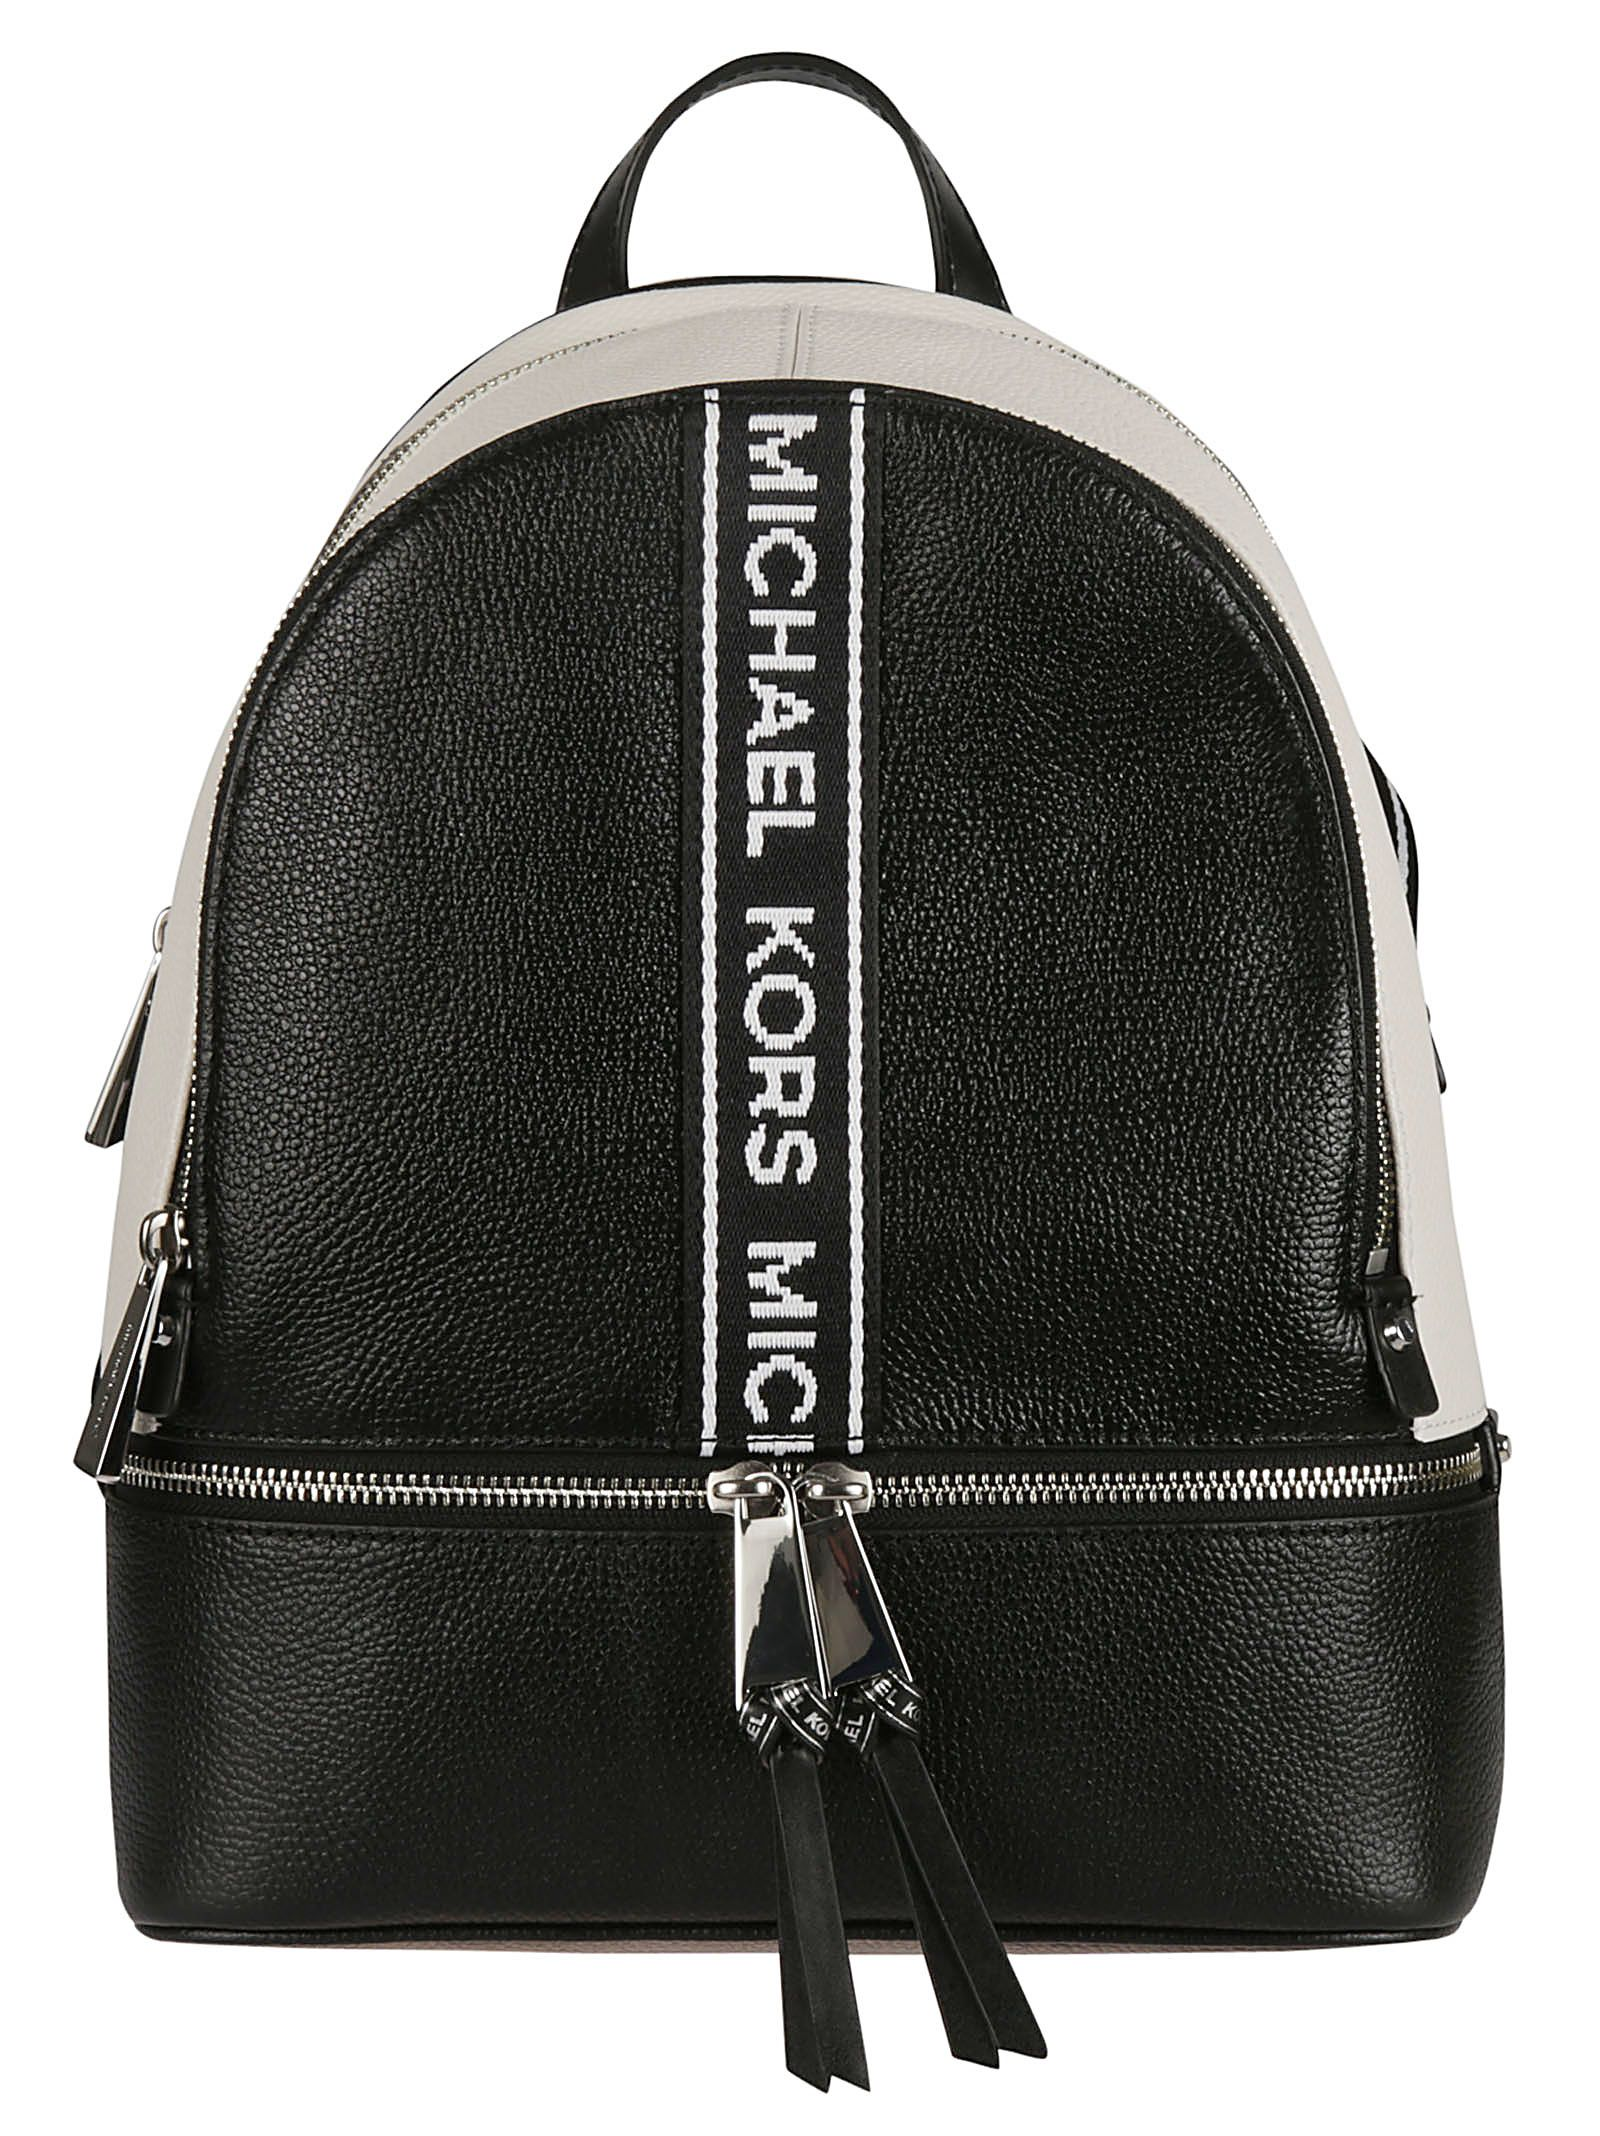 65371c6bb8bc Michael Kors Michael Kors Rhea Backpack - Black optic white ...